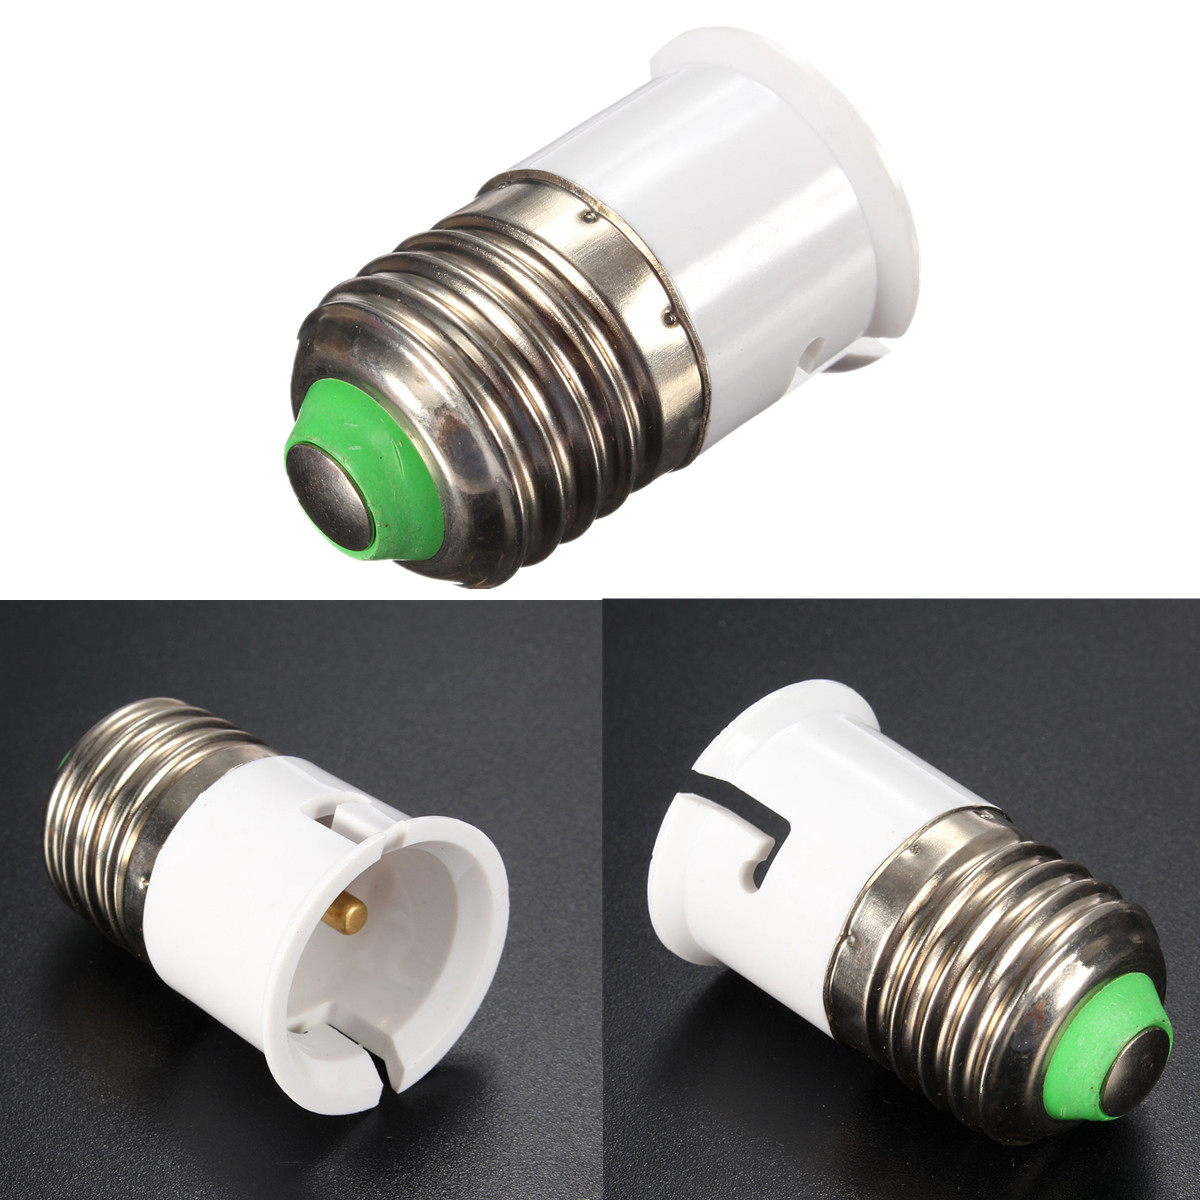 E27 E14 E27 B22 G10 E14 Base Screw Led Light Lamp Bulb Holder